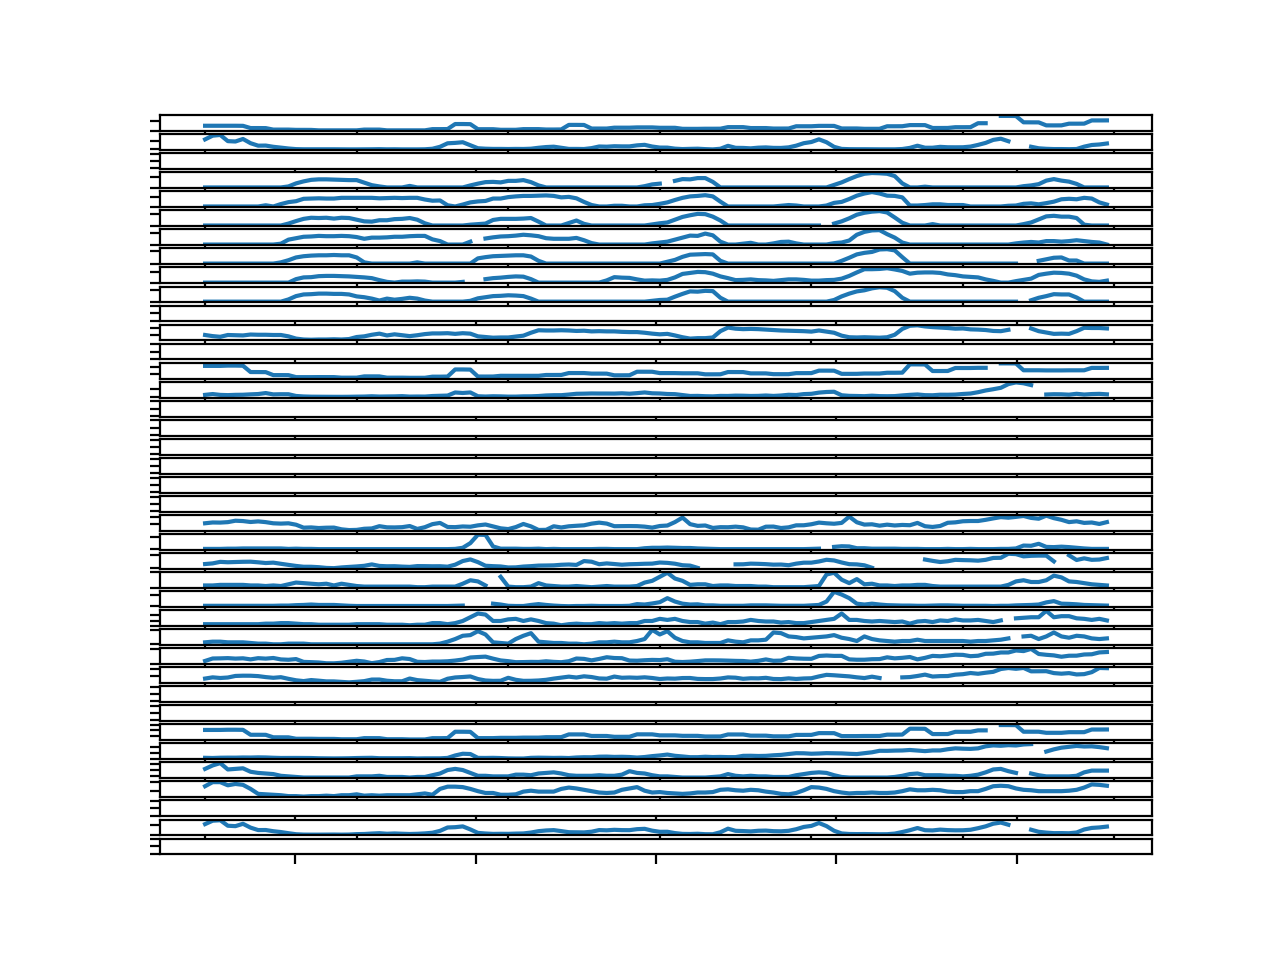 Line Plots for All Targets in Chunk 1 With Missing Values Marked